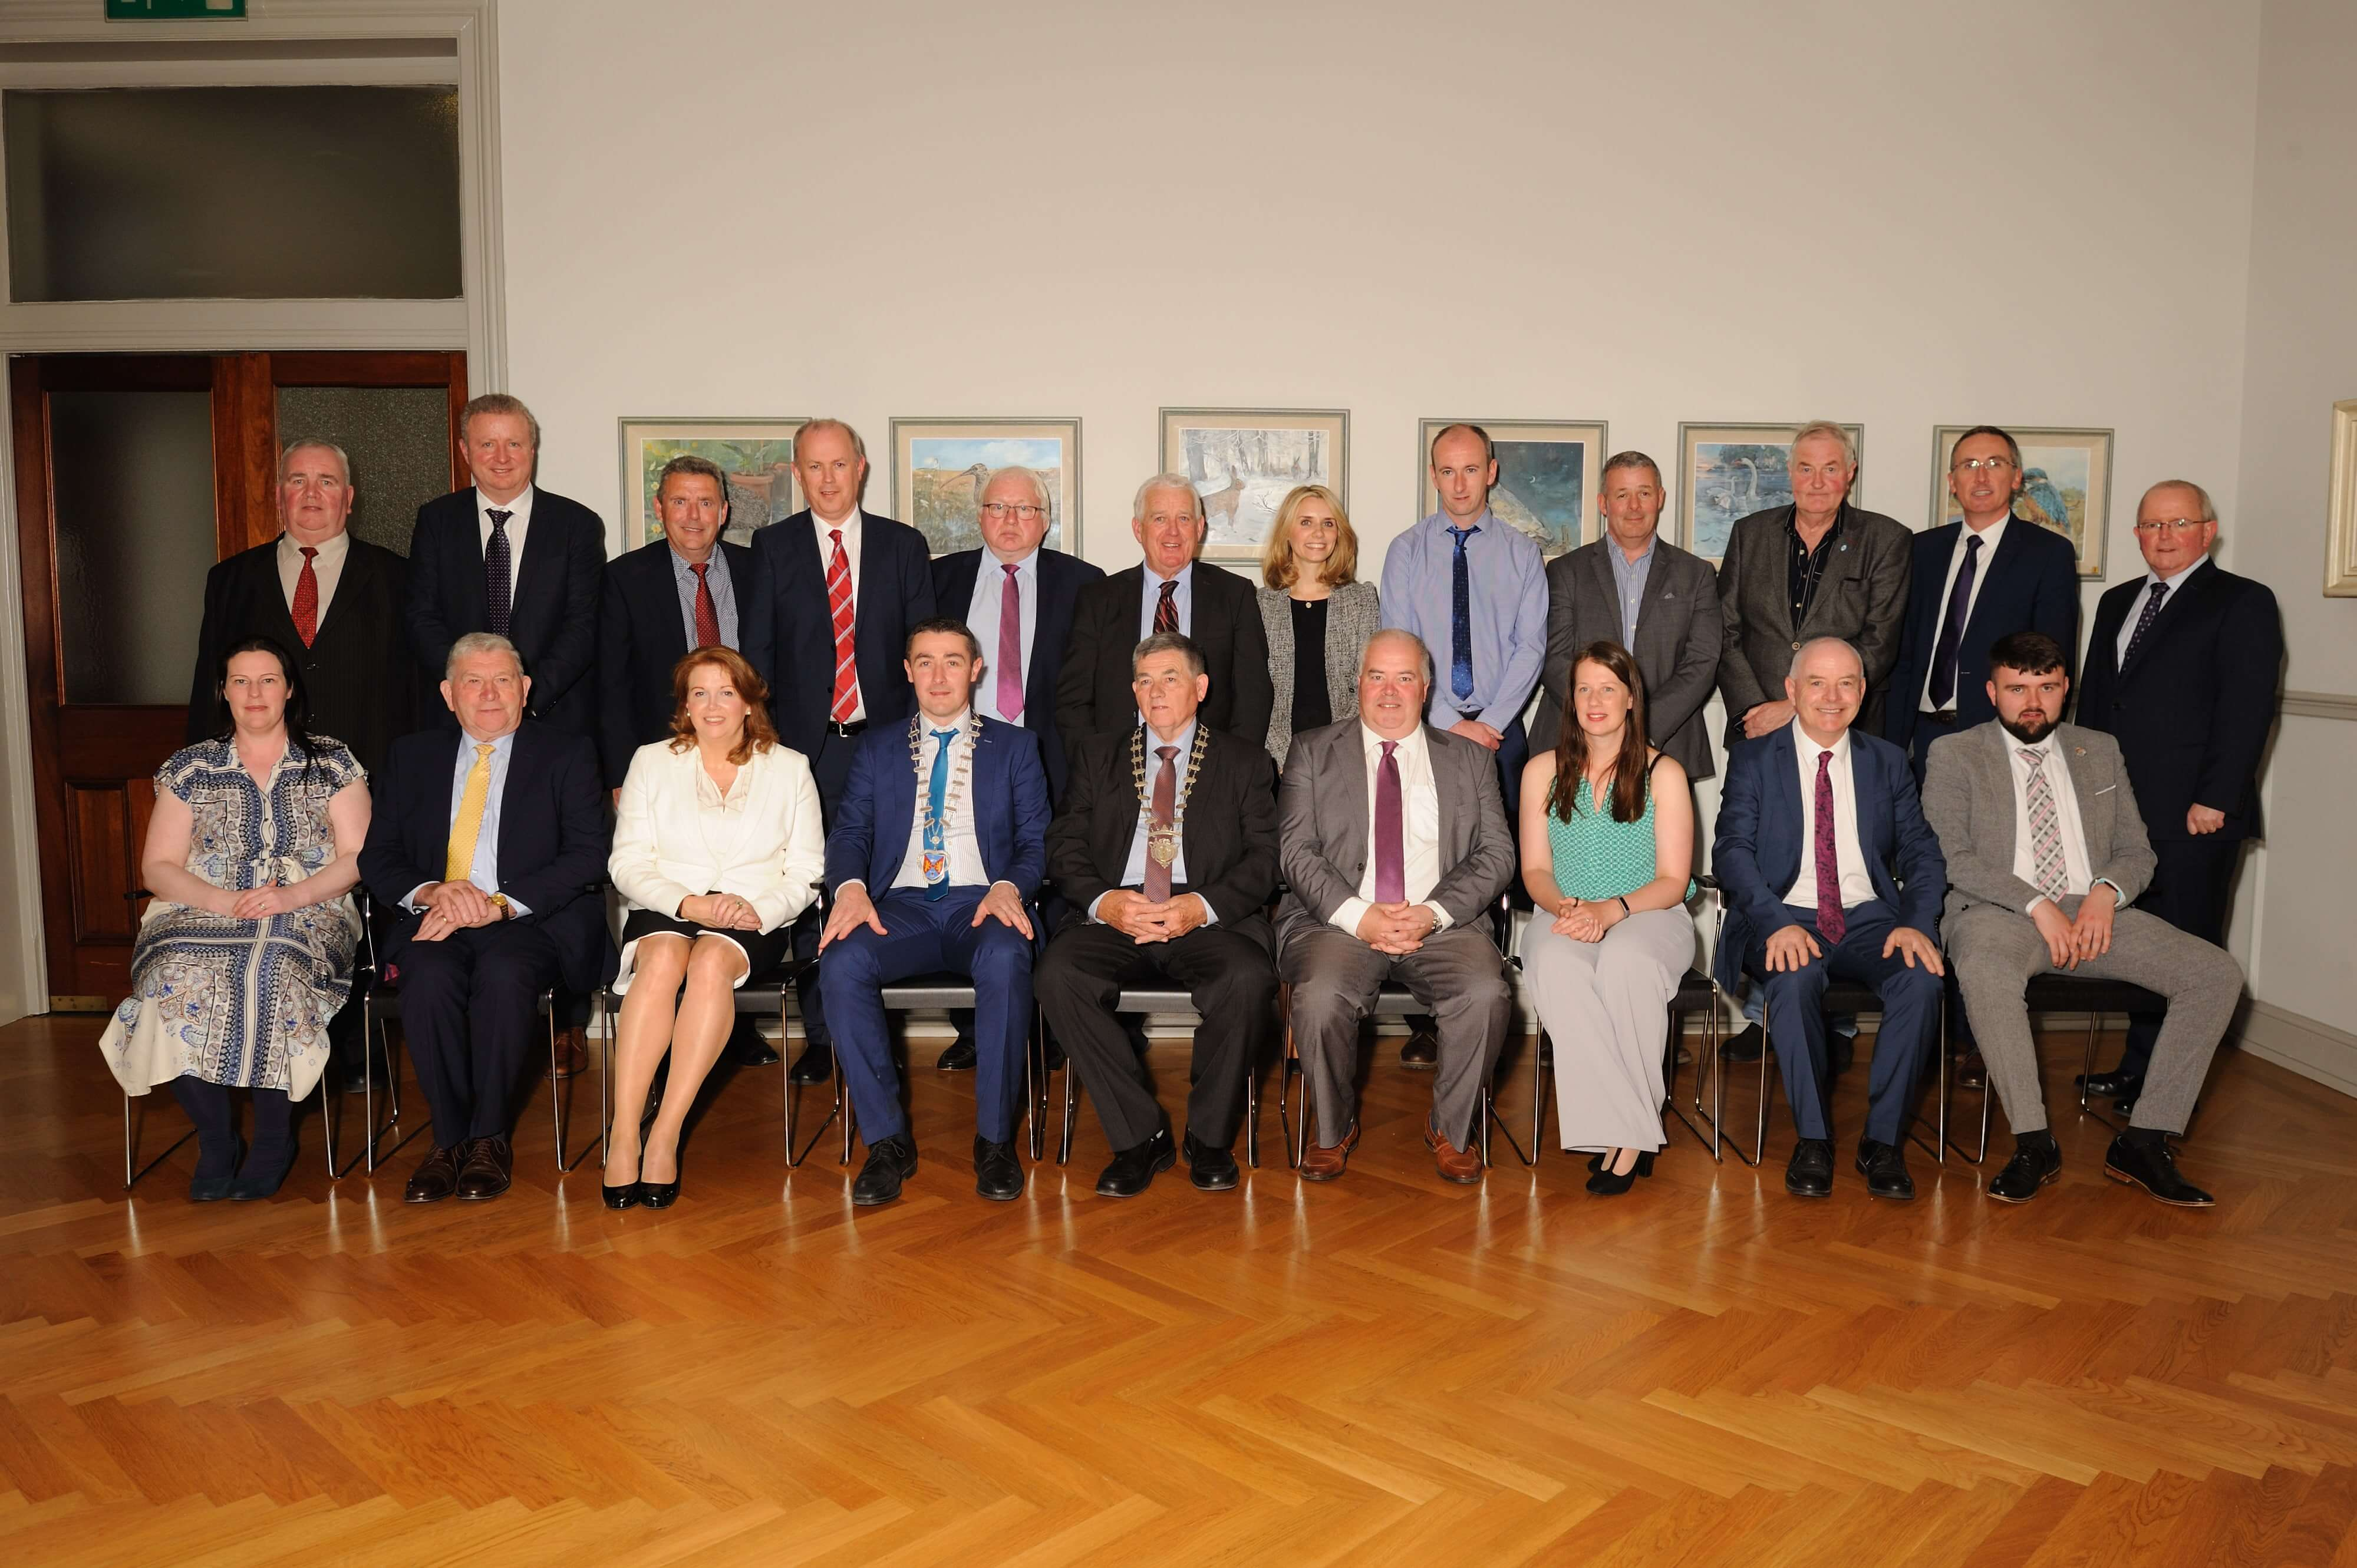 2019 Annual Meeting of Westmeath County Council